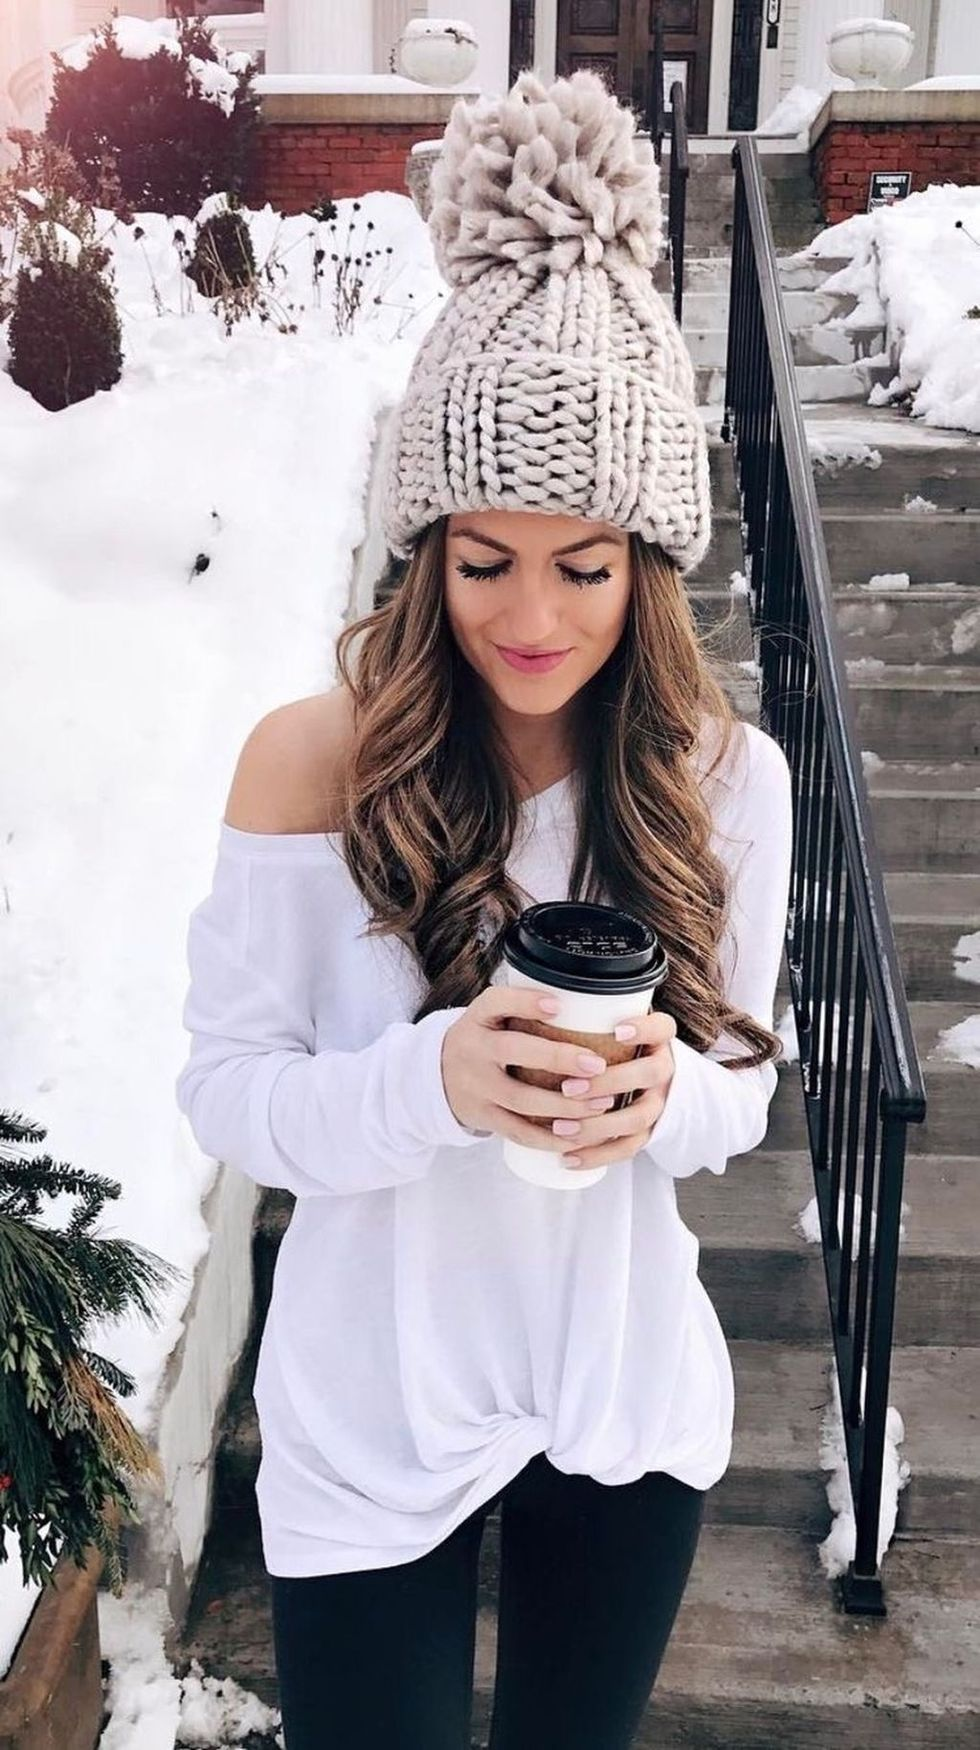 Fashionable Women Hats For Winter And Snow Outfits 33 -4034